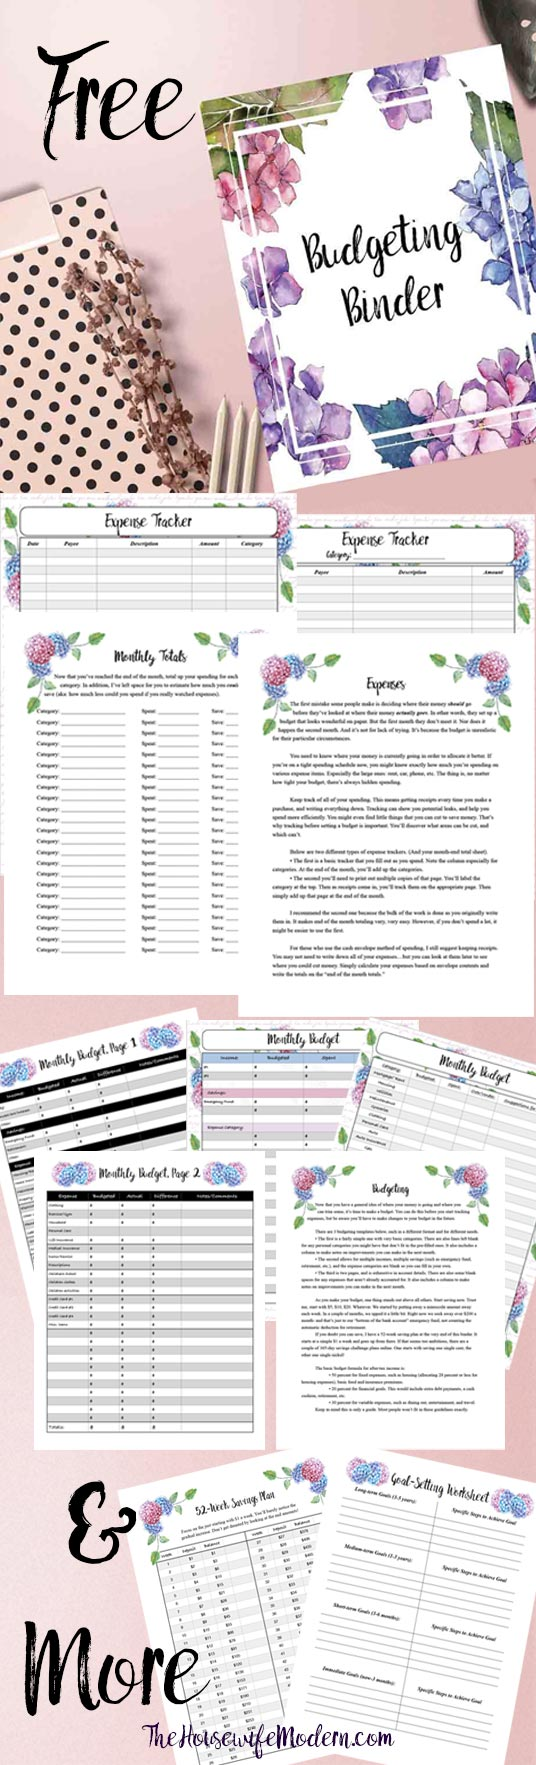 Free Printable Budgeting Binder! 15+ pages with expense trackers, budgeting, goal-setting, practical tips for saving money & more. #budget #budgeting #free #freebudgeting #financial #freeprintable #money